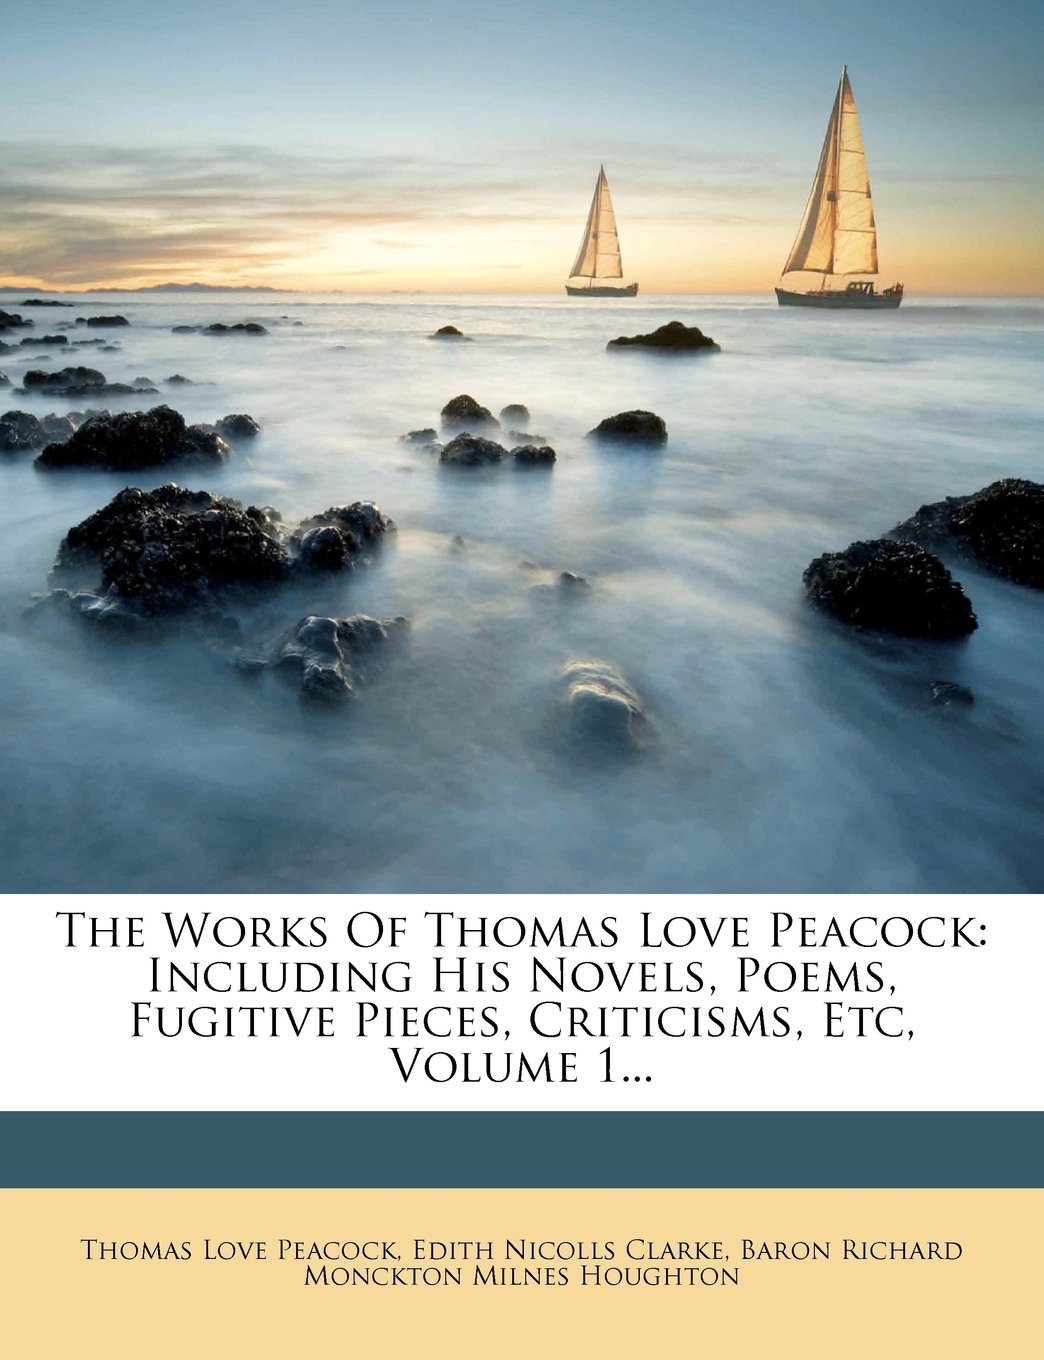 The Works Of Thomas Love Peacock: Including His Novels, Poems, Fugitive Pieces, Criticisms, Etc, Volume 1... pdf